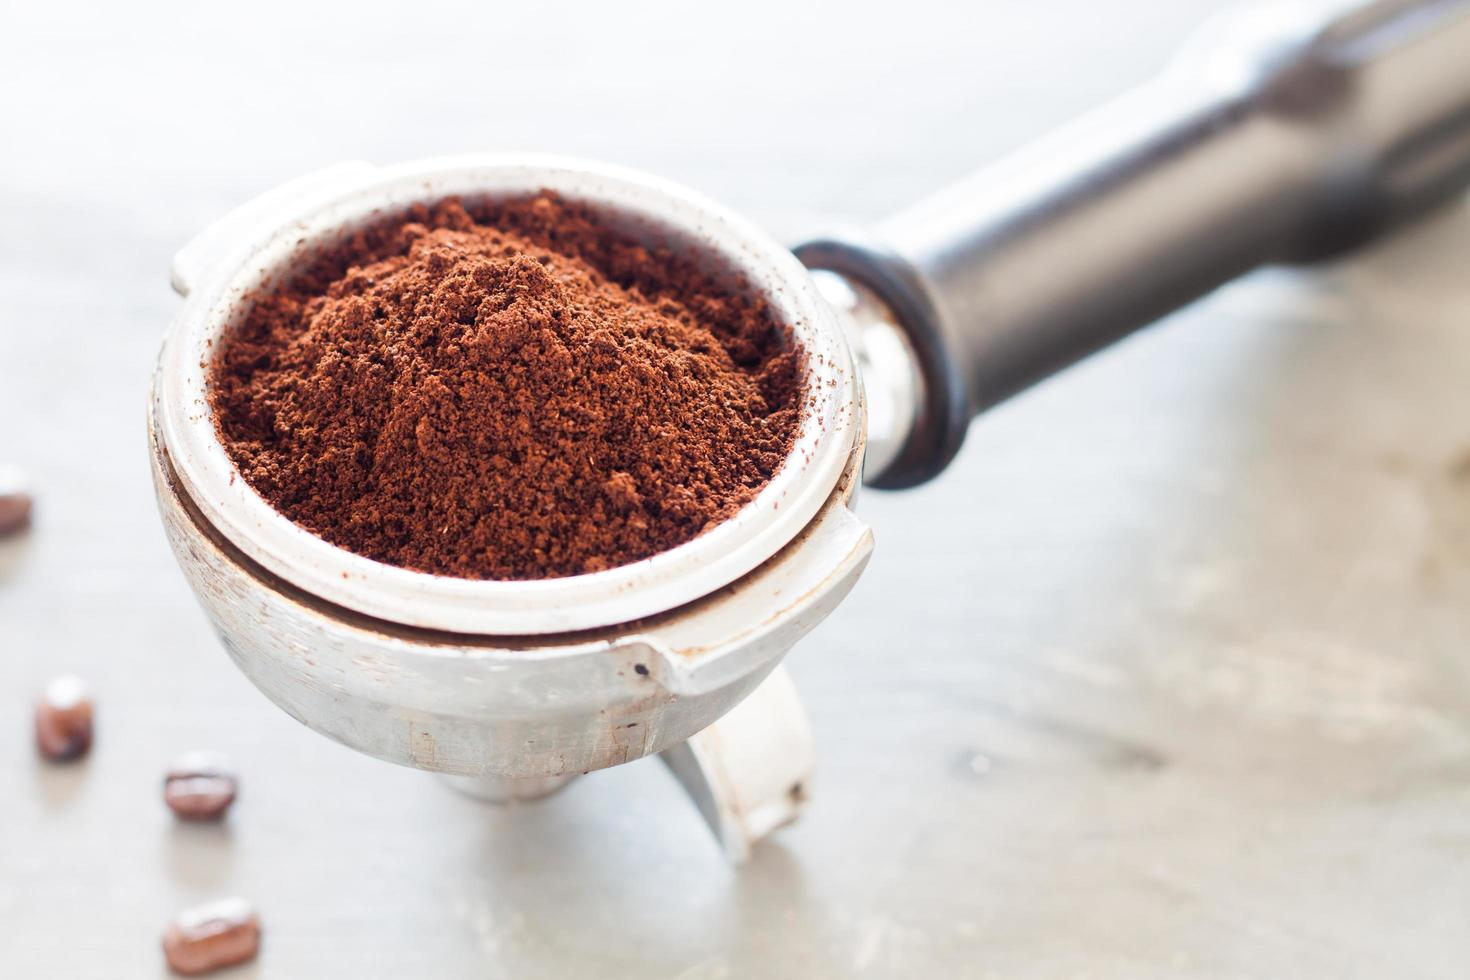 Close-up of a coffee grinder photo